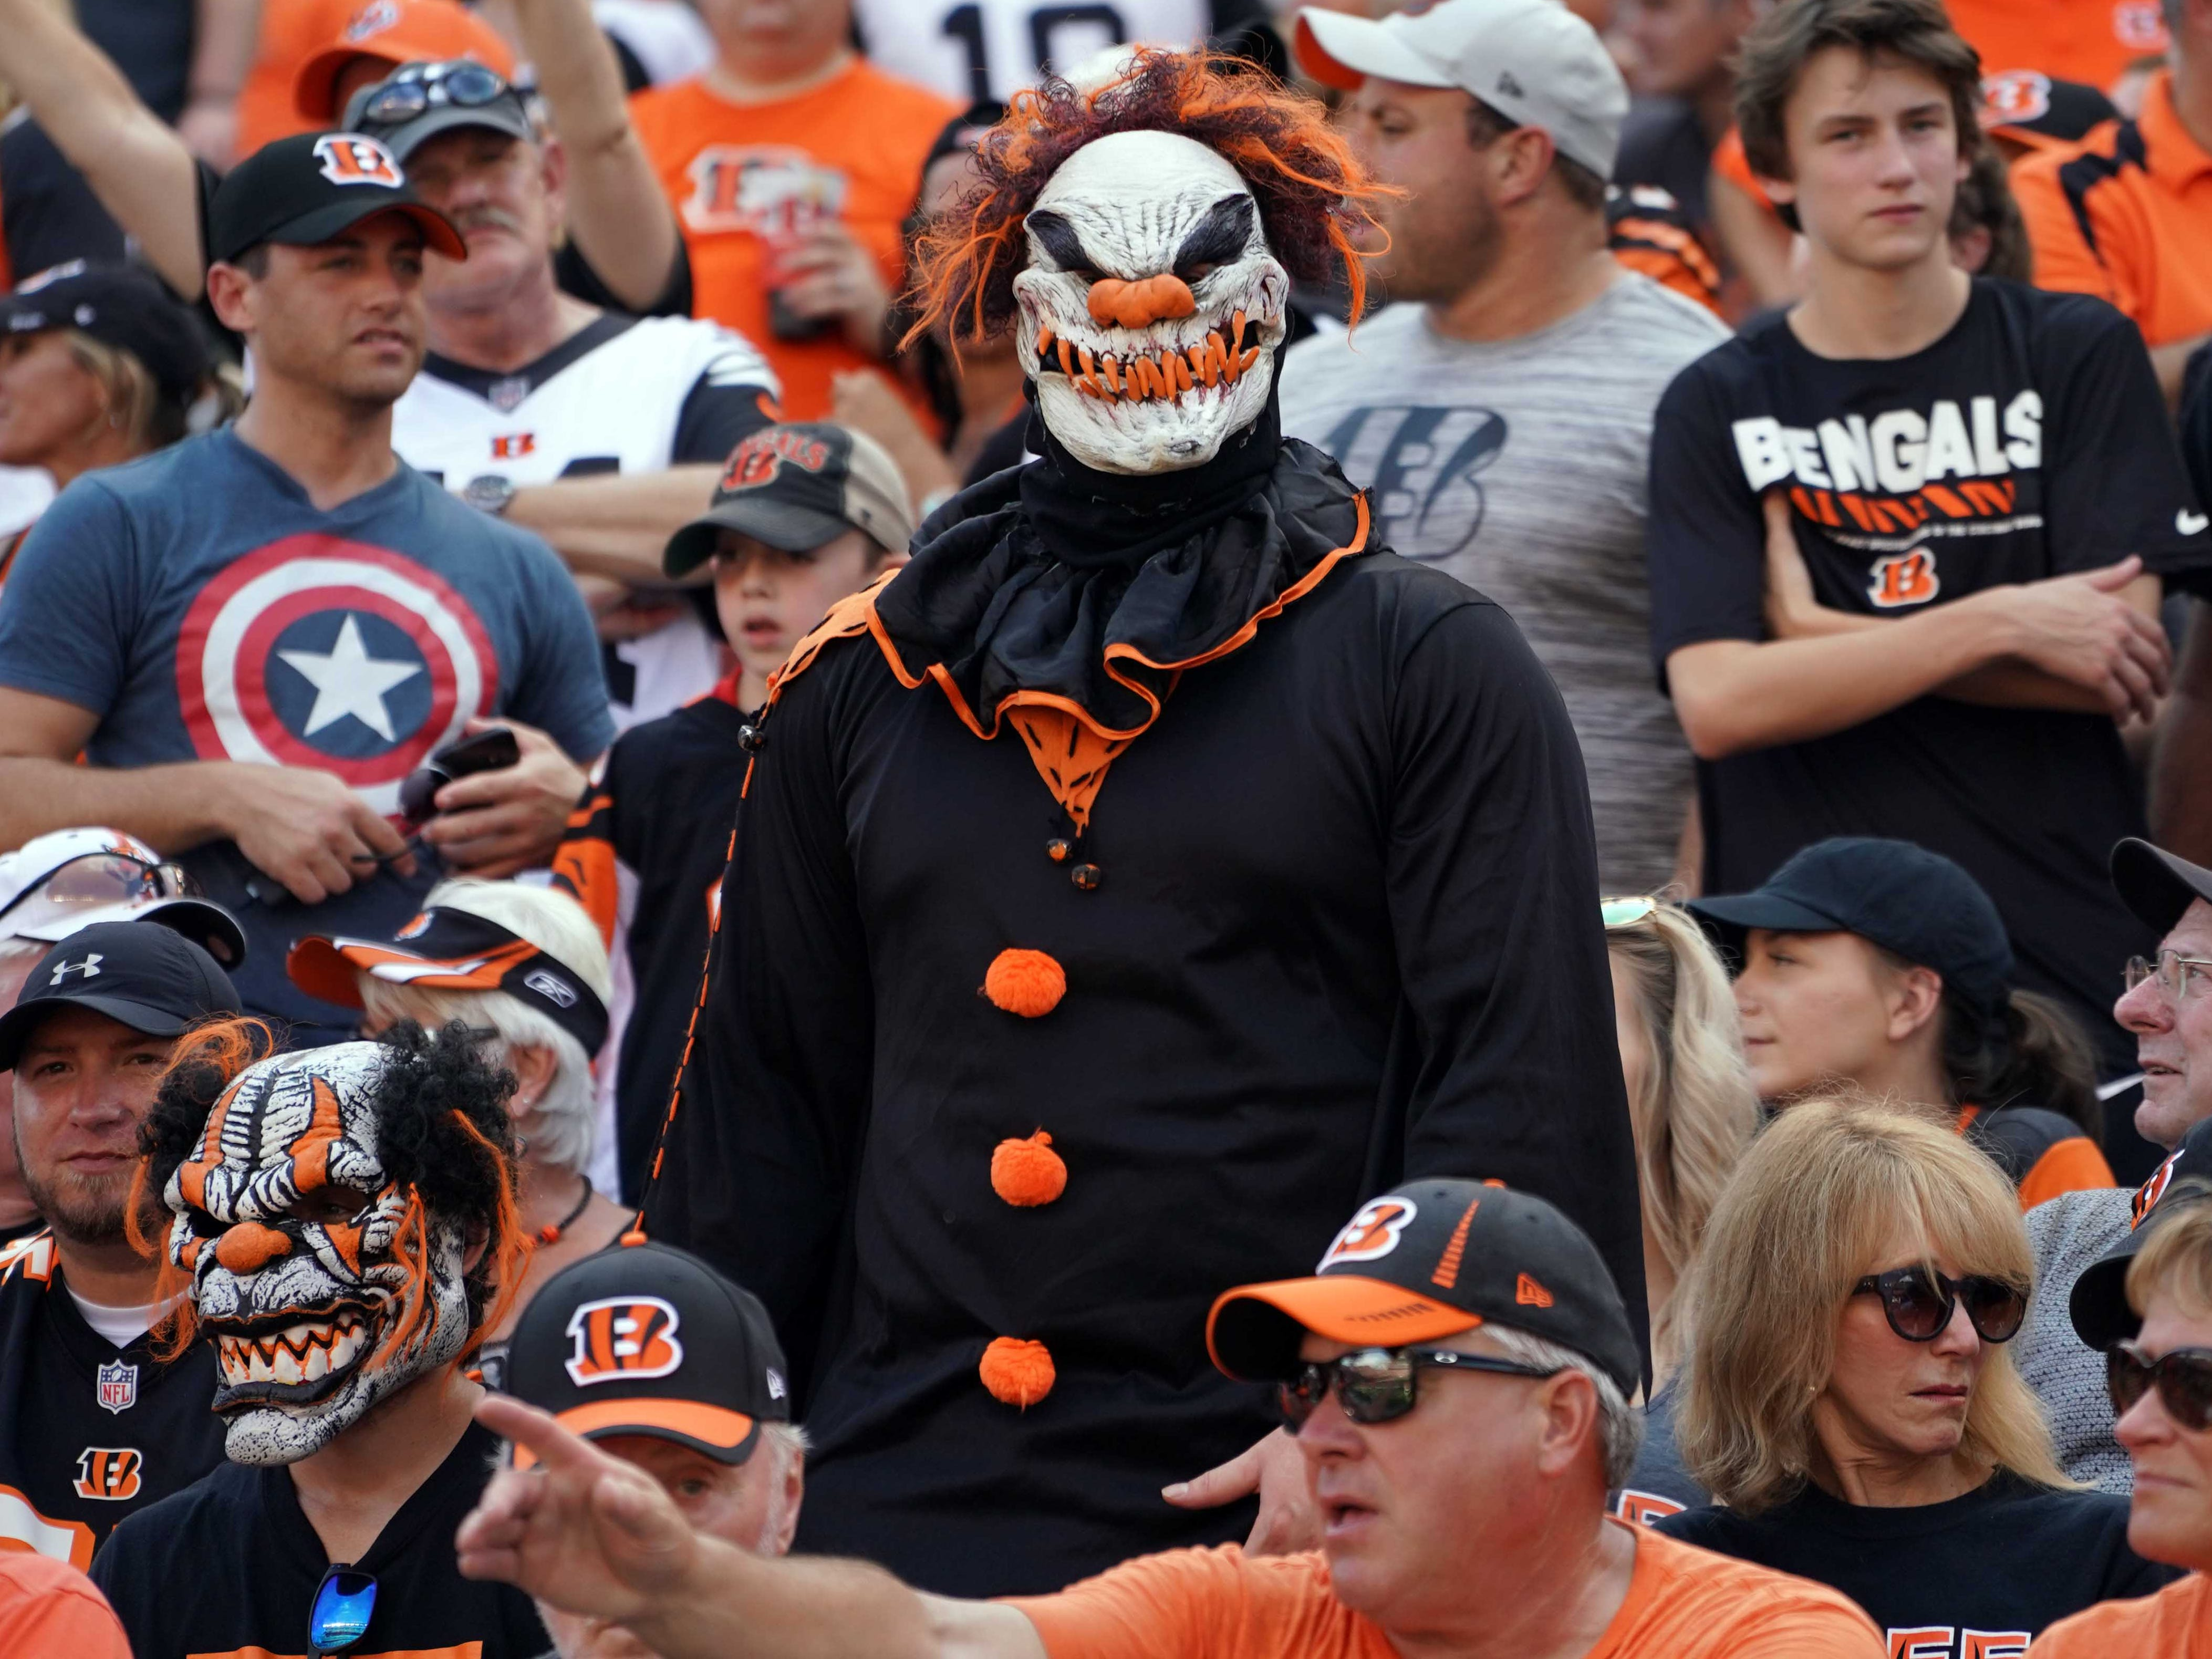 A fan stands in a clown costume during the game between the Miami Dolphins and Cincinnati Bengals at Paul Brown Stadium.